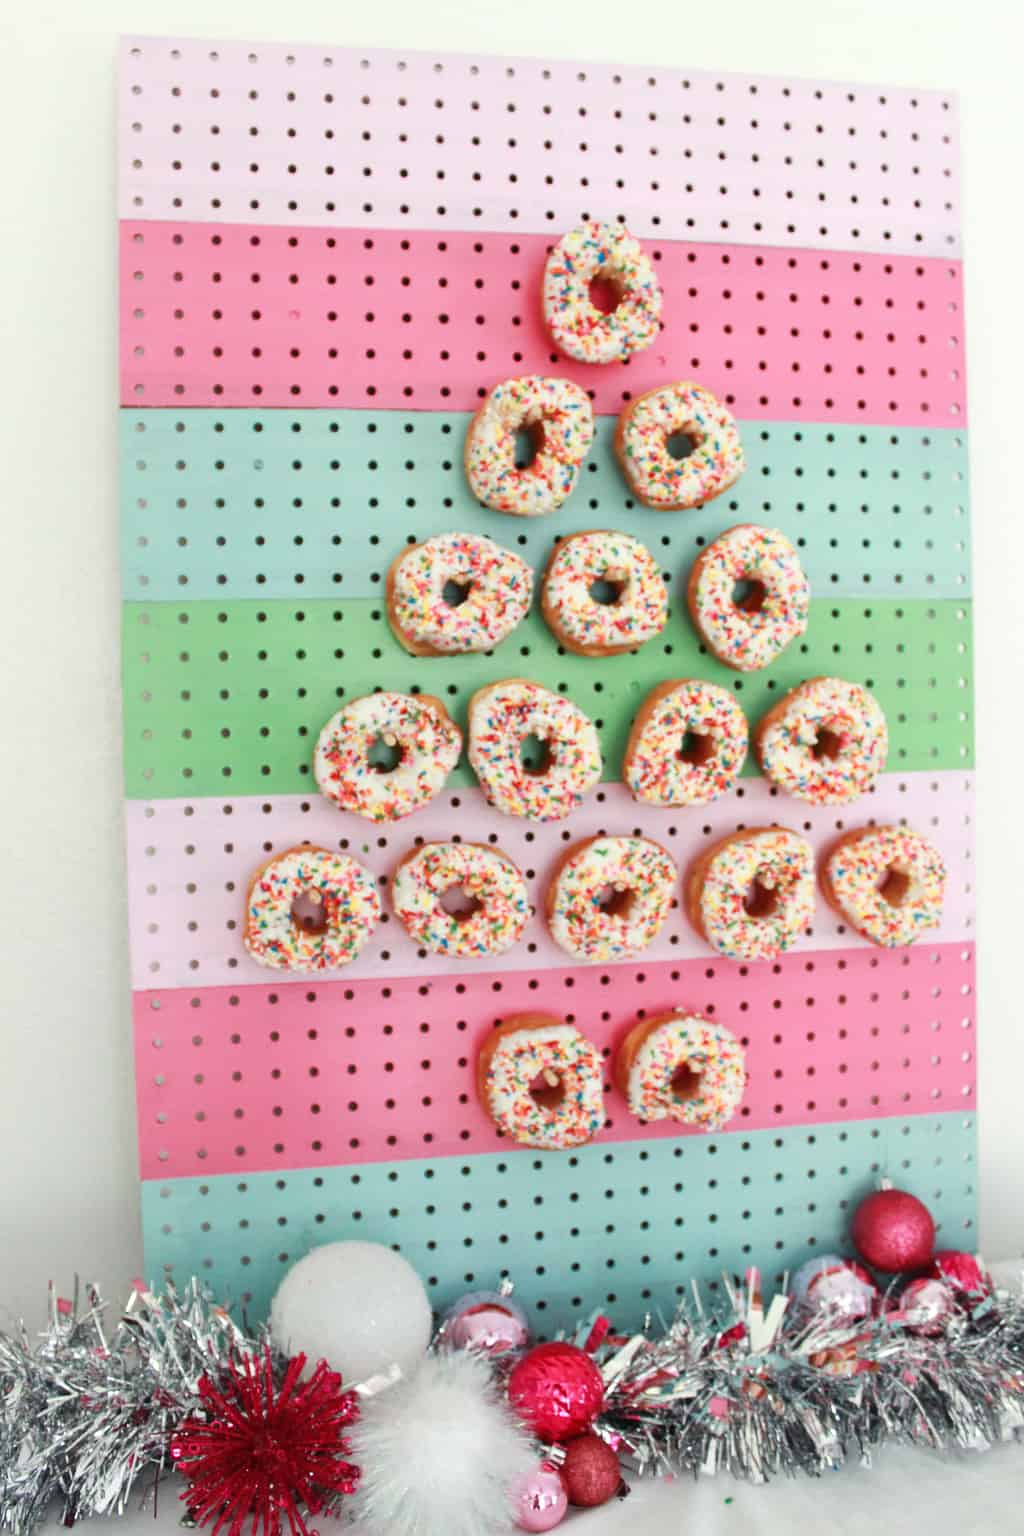 donut-pegboard-project